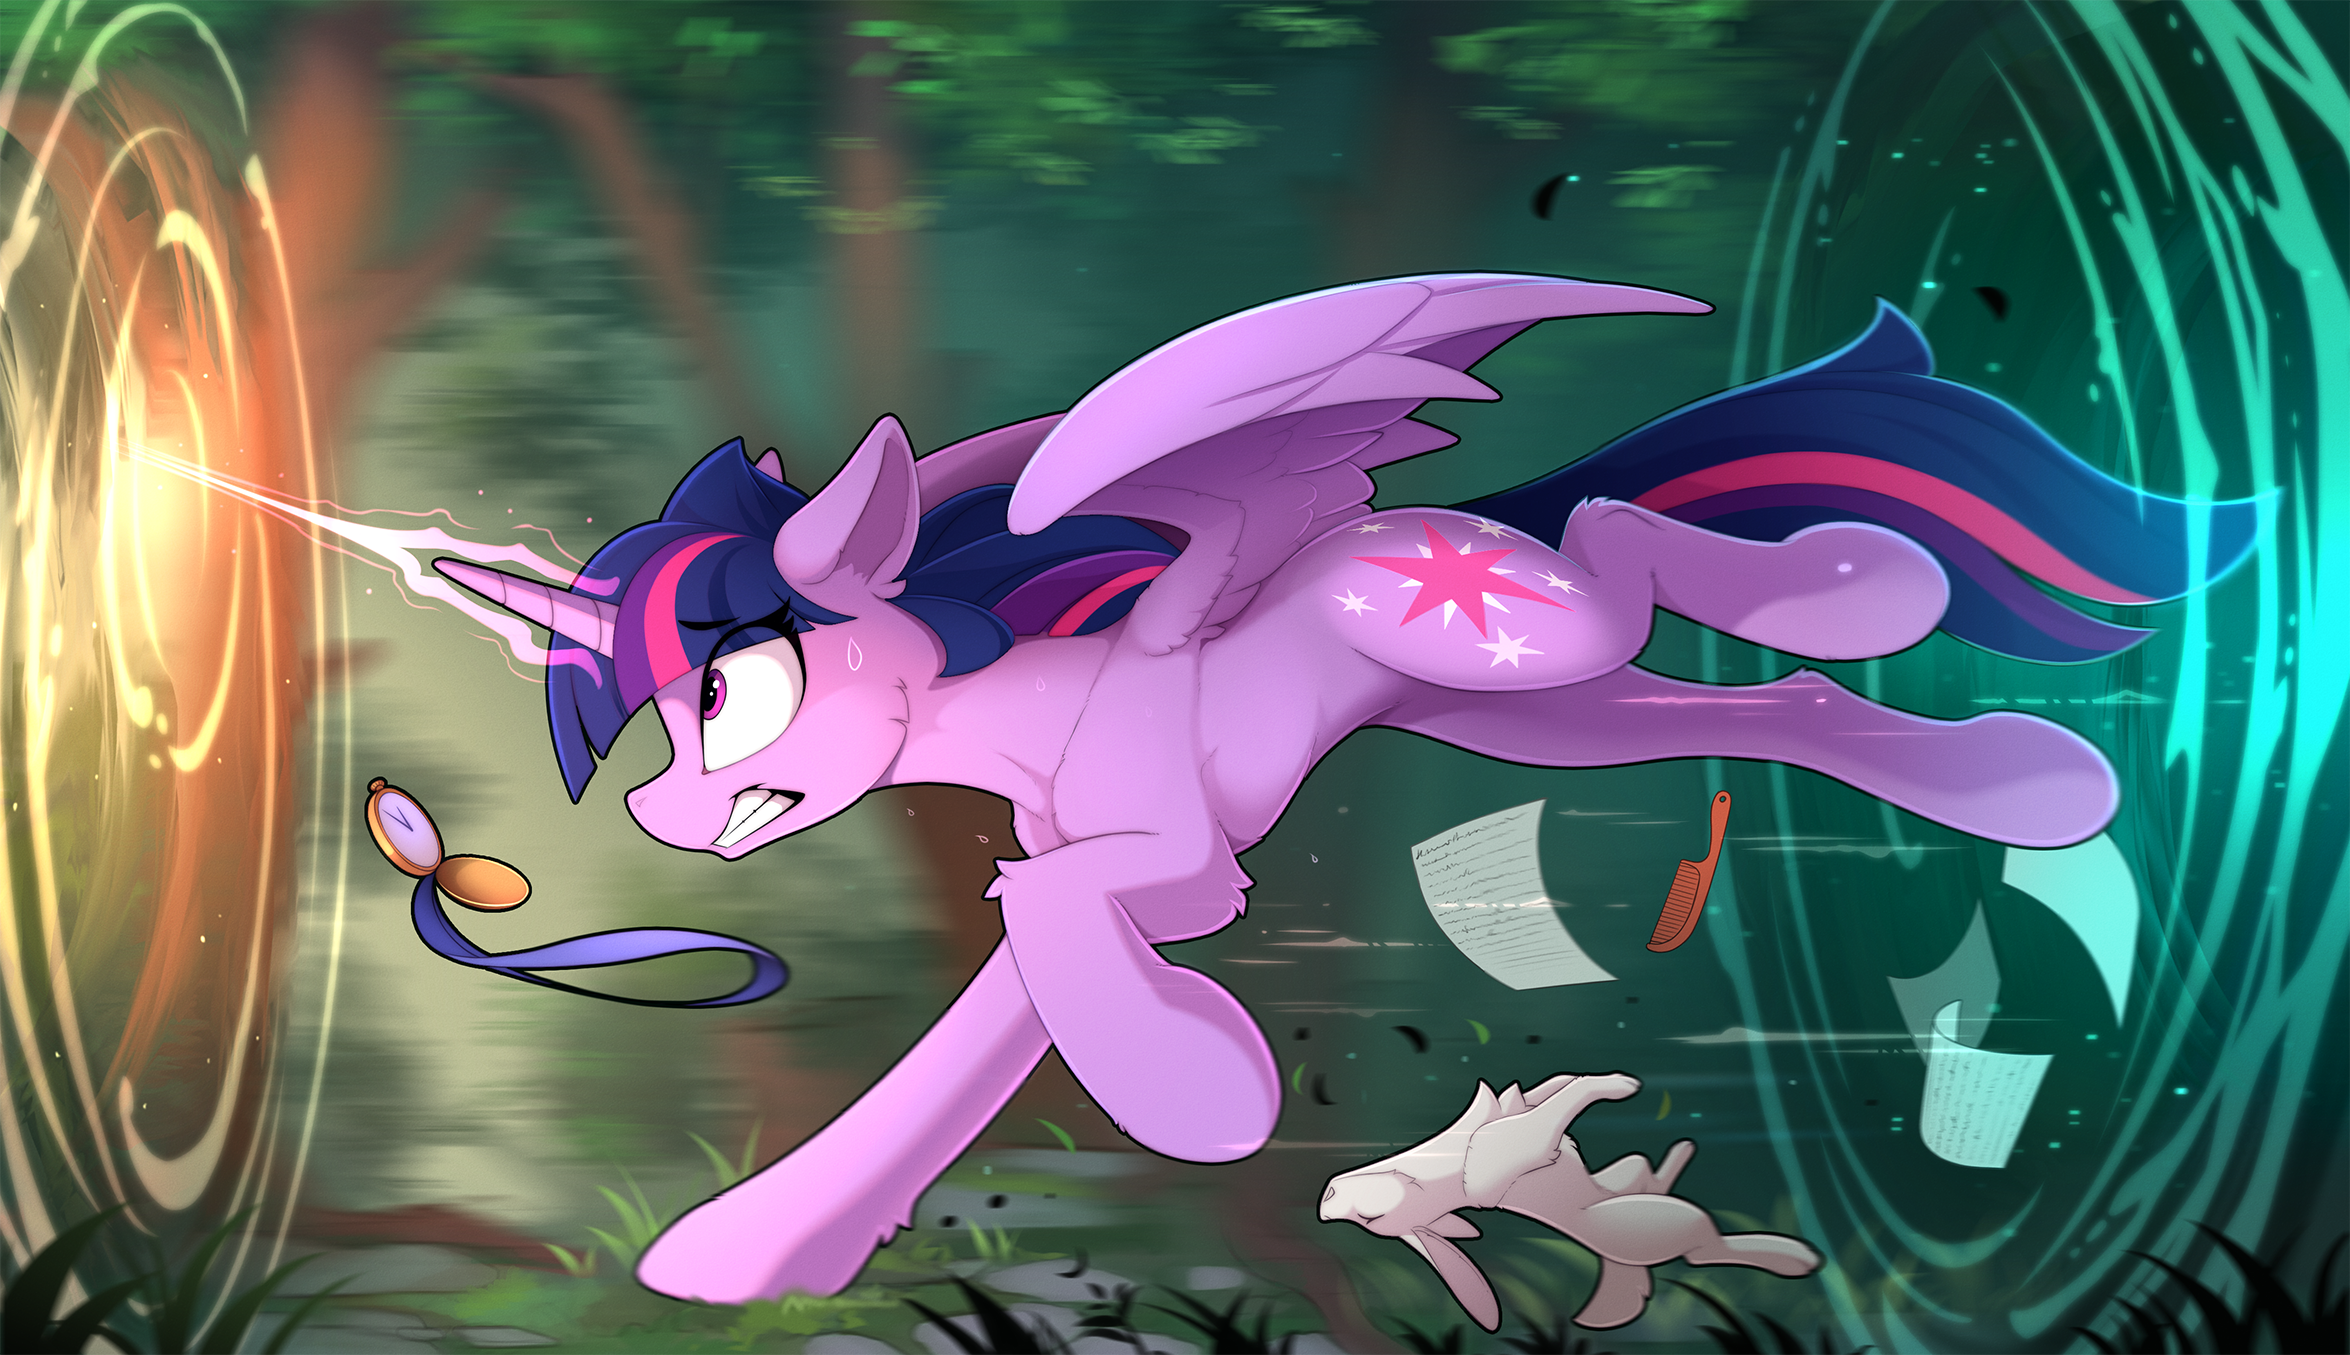 Twilight can't be late by Yakovlev-vad